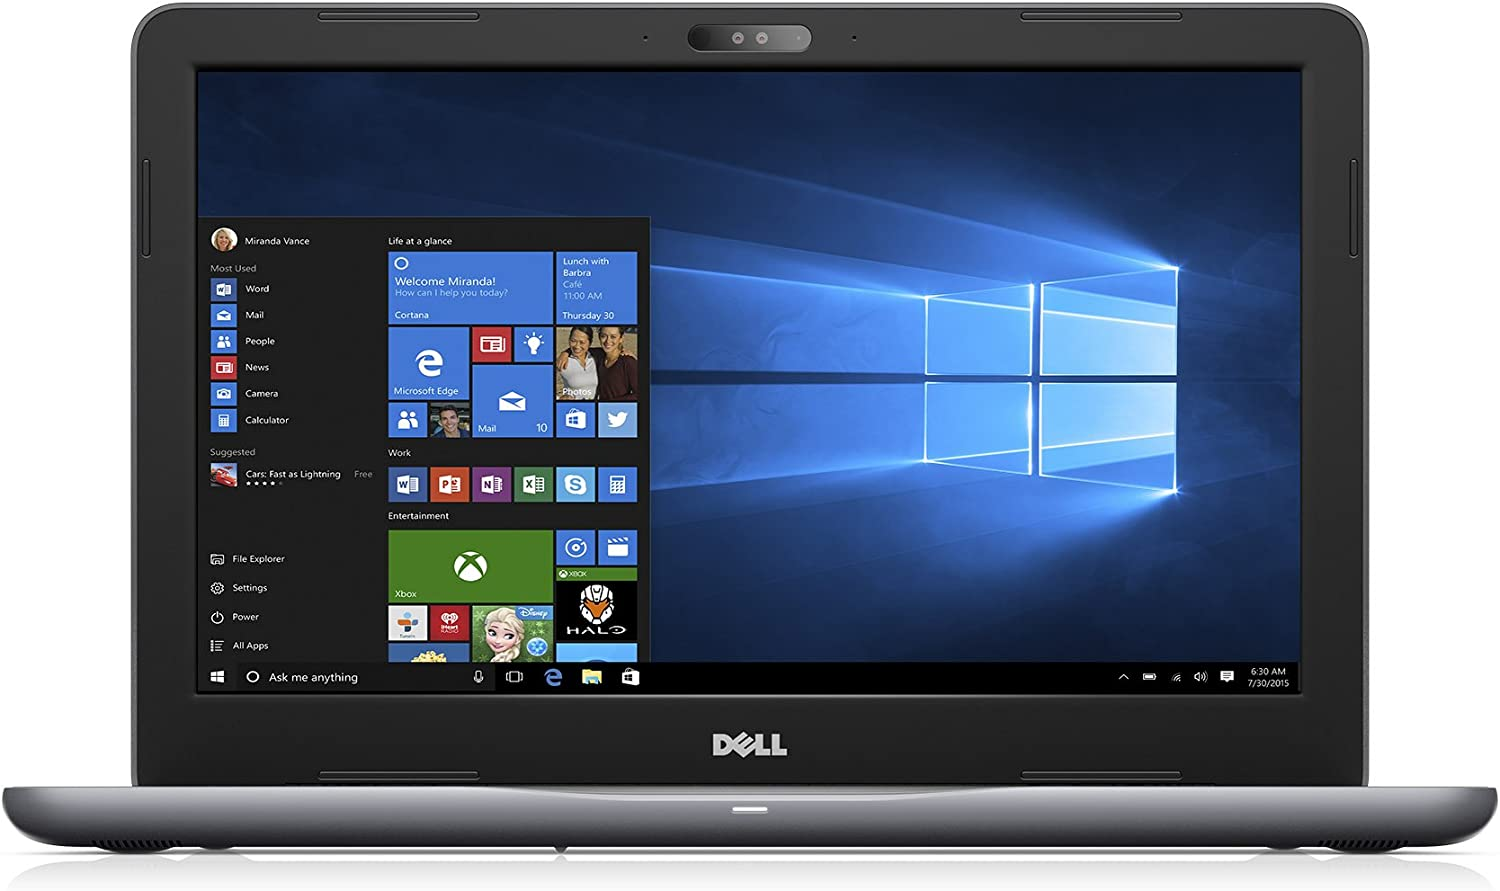 Dell i5565-A973GRY-PUS Inspiron, 15.6